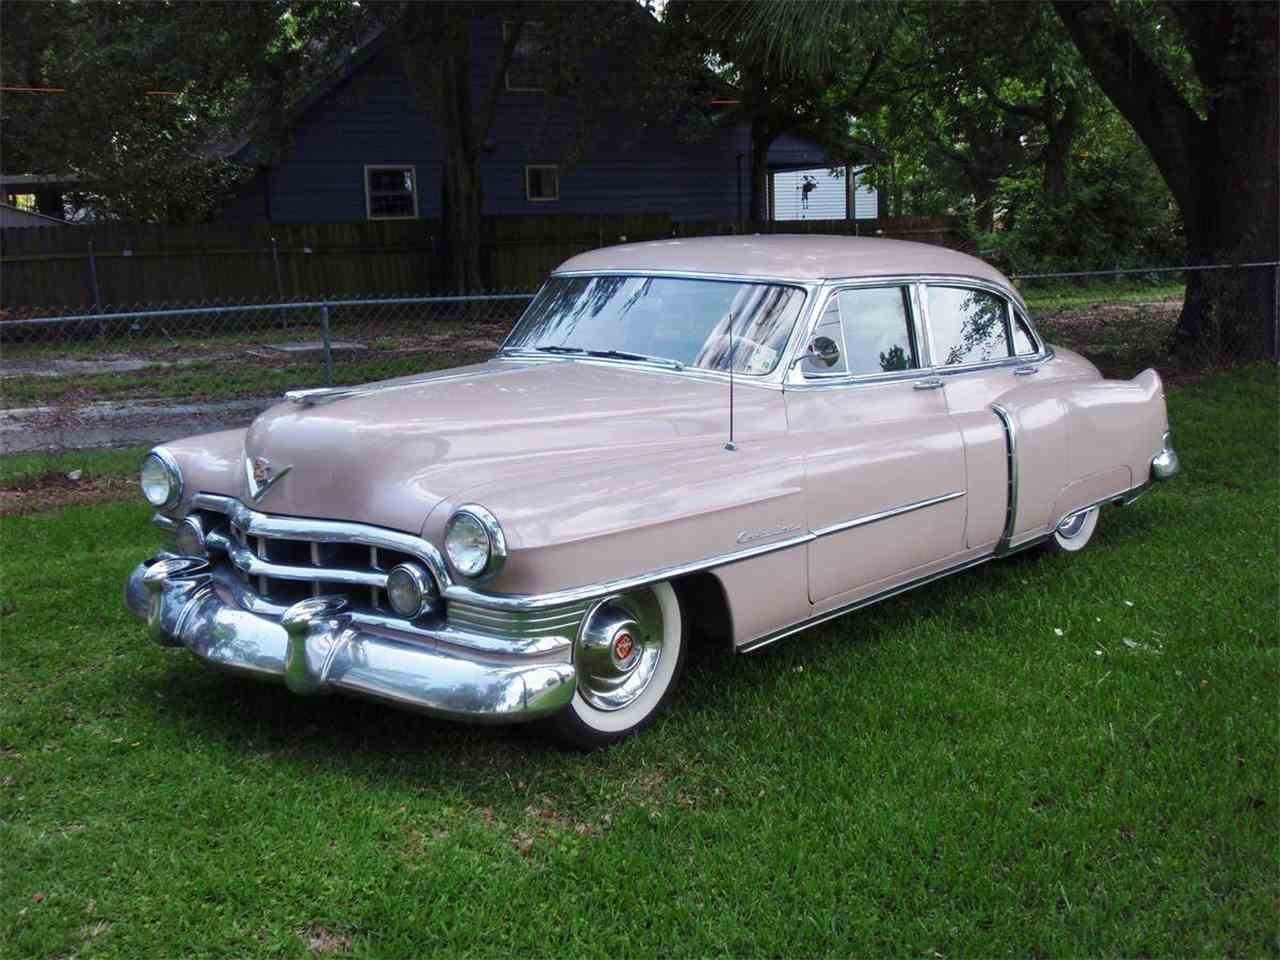 Classic Cars For Sale California Usa: 1950 Cadillac Series 62 For Sale